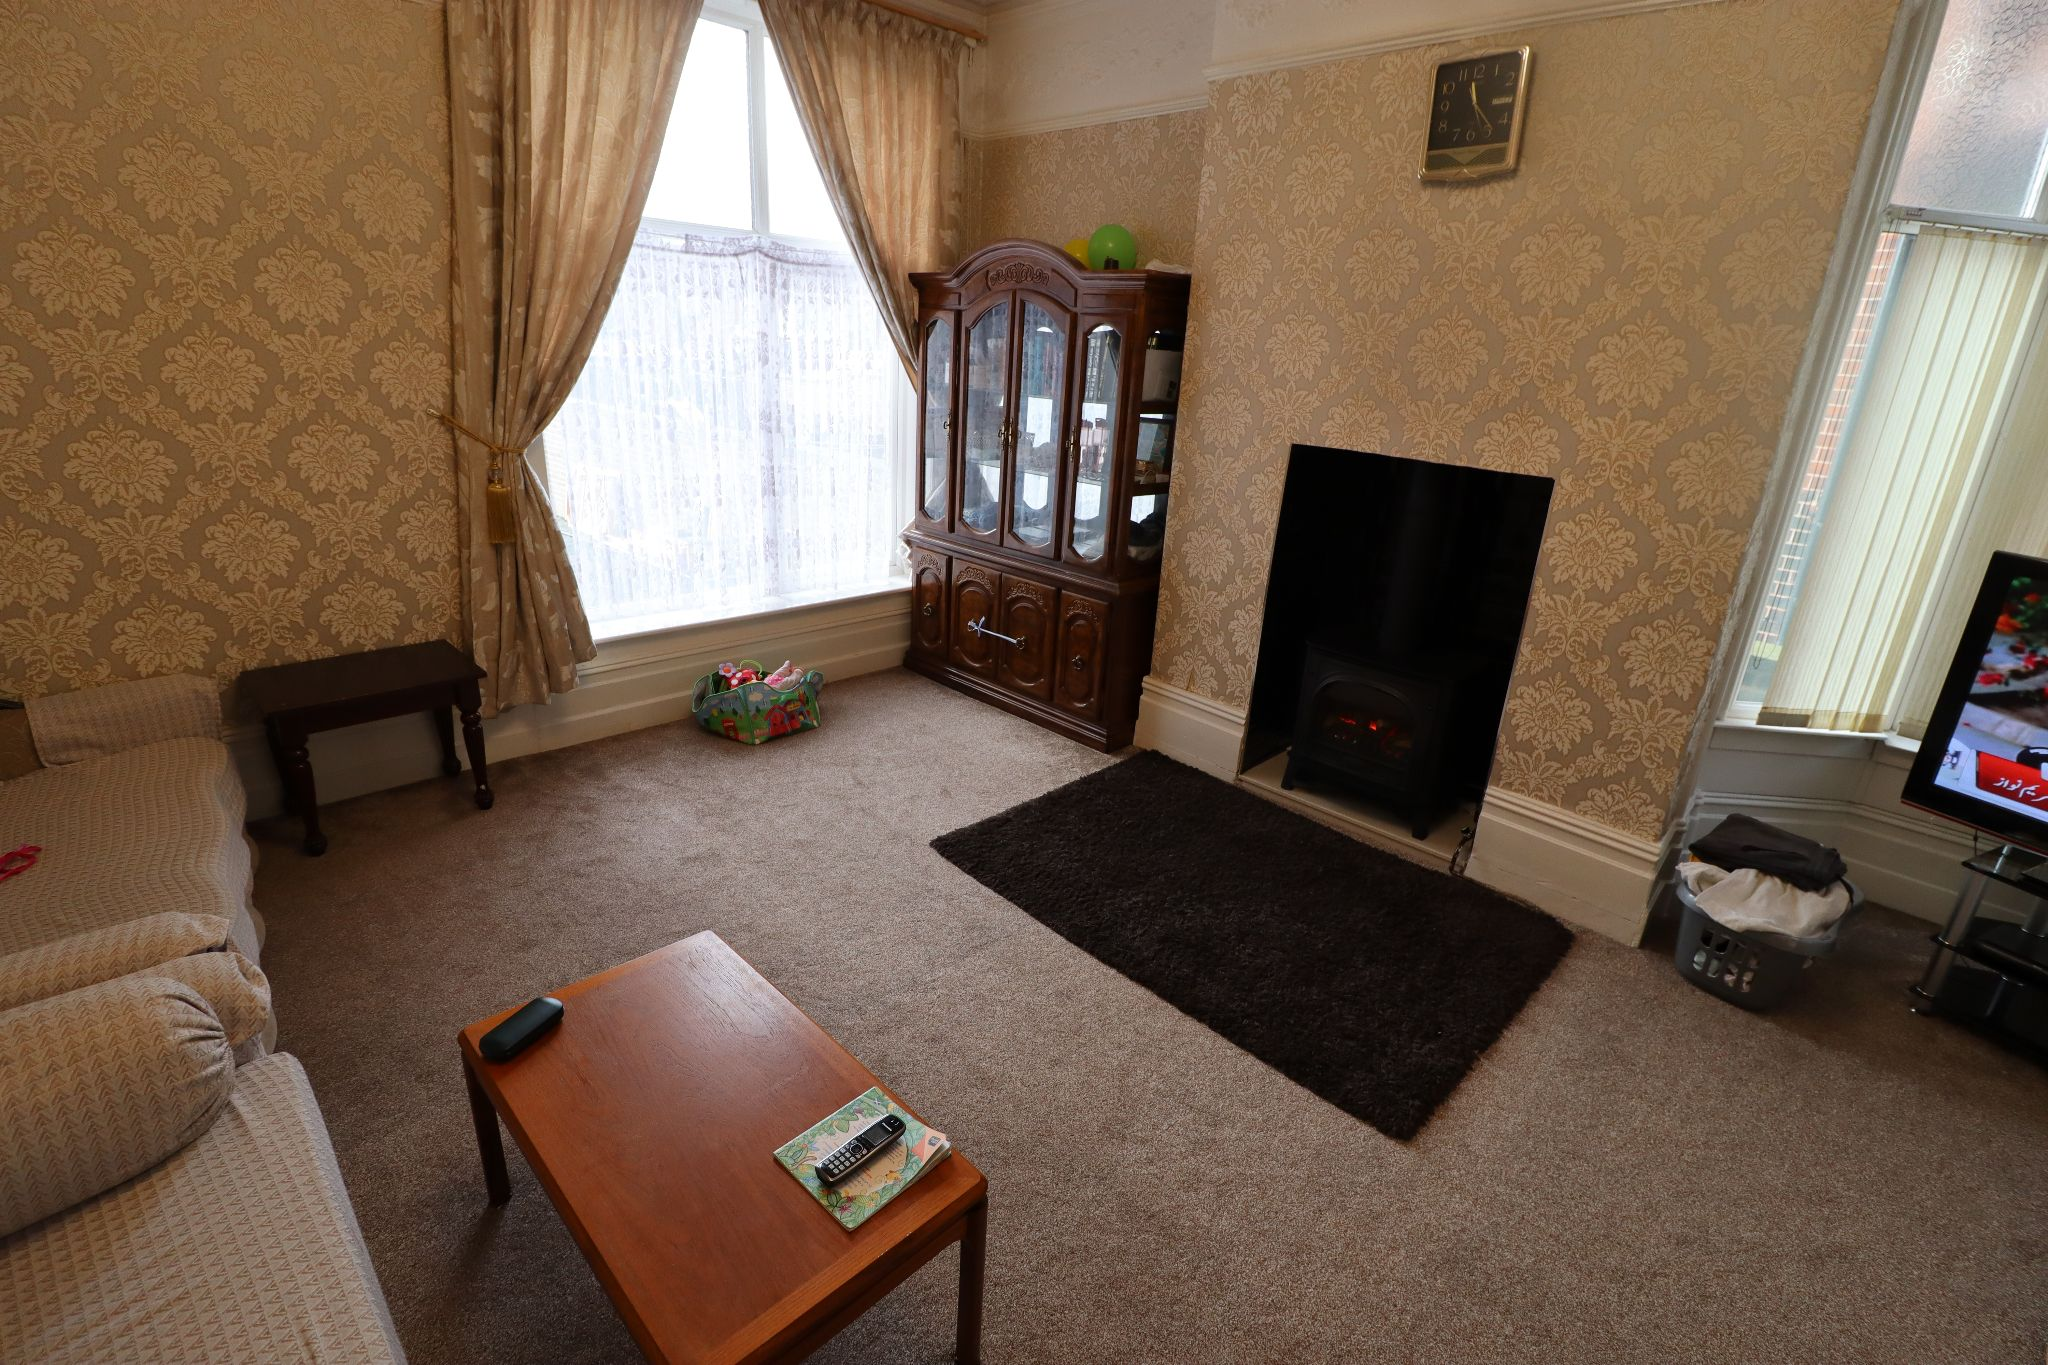 6 Bedroom Semi-detached House For Sale - Photograph 2